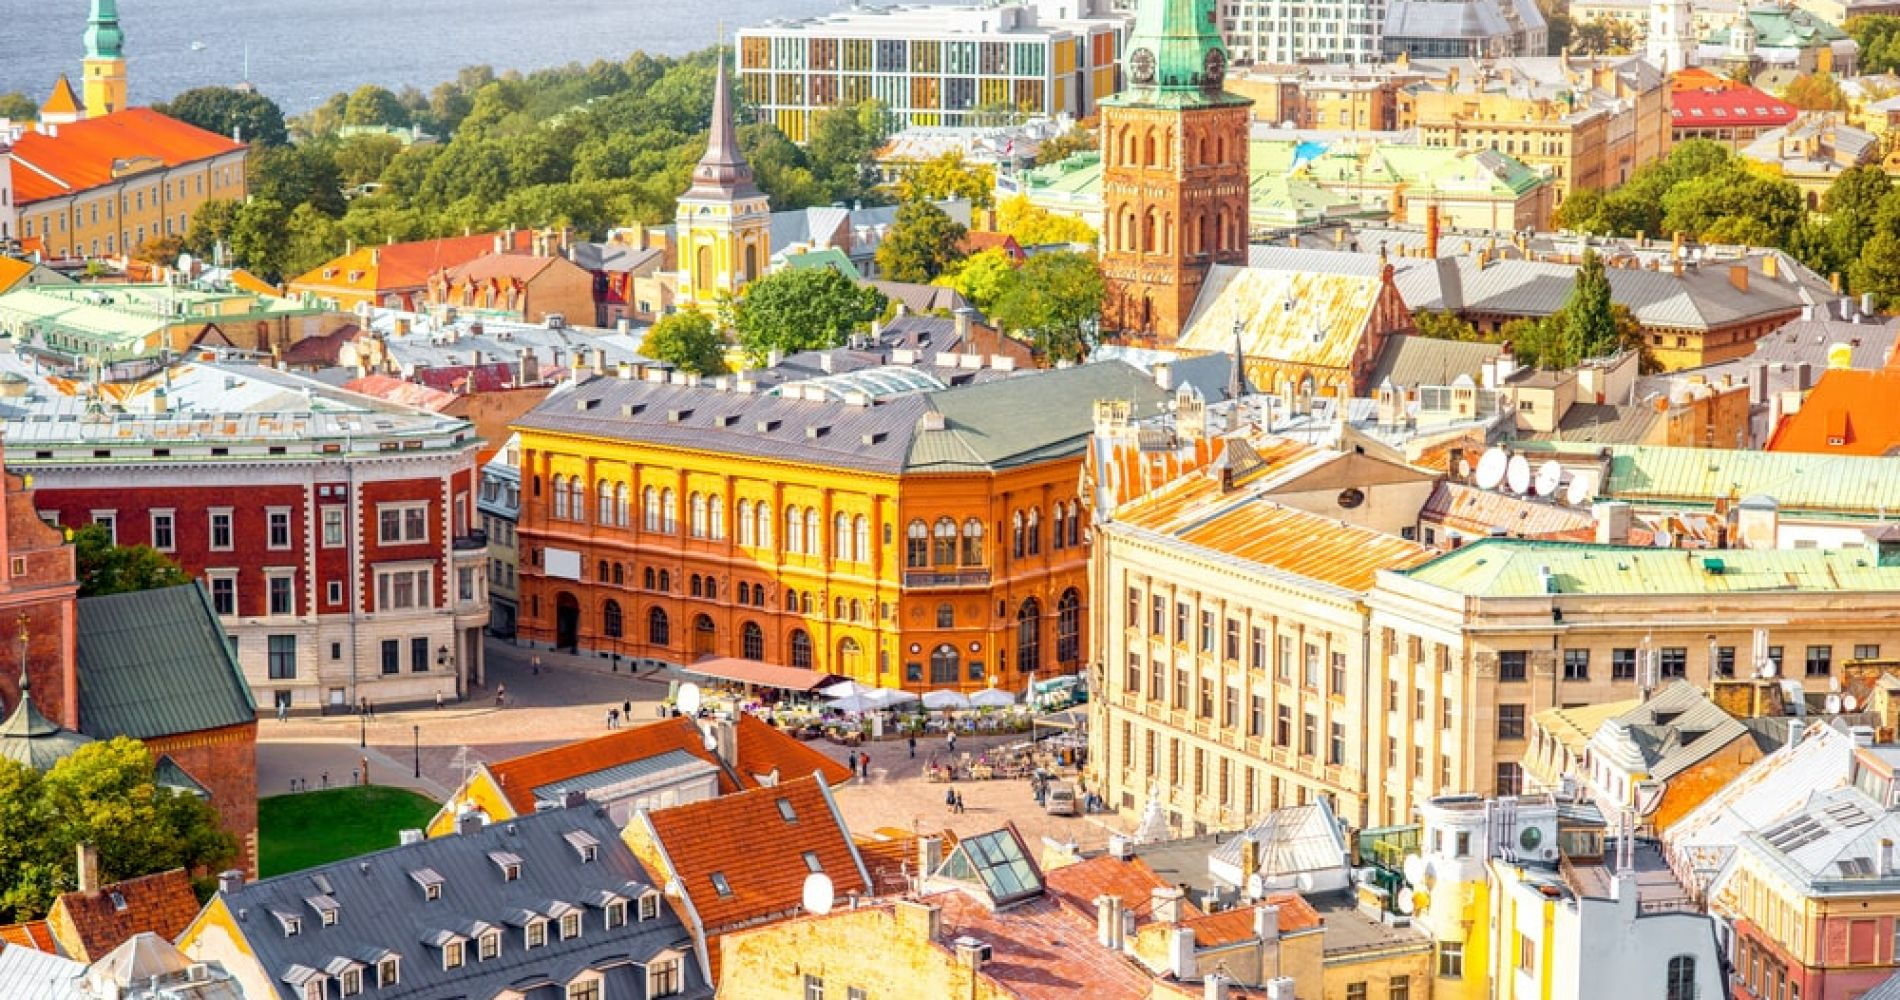 Wander through a Beautiful Old Town of Riga